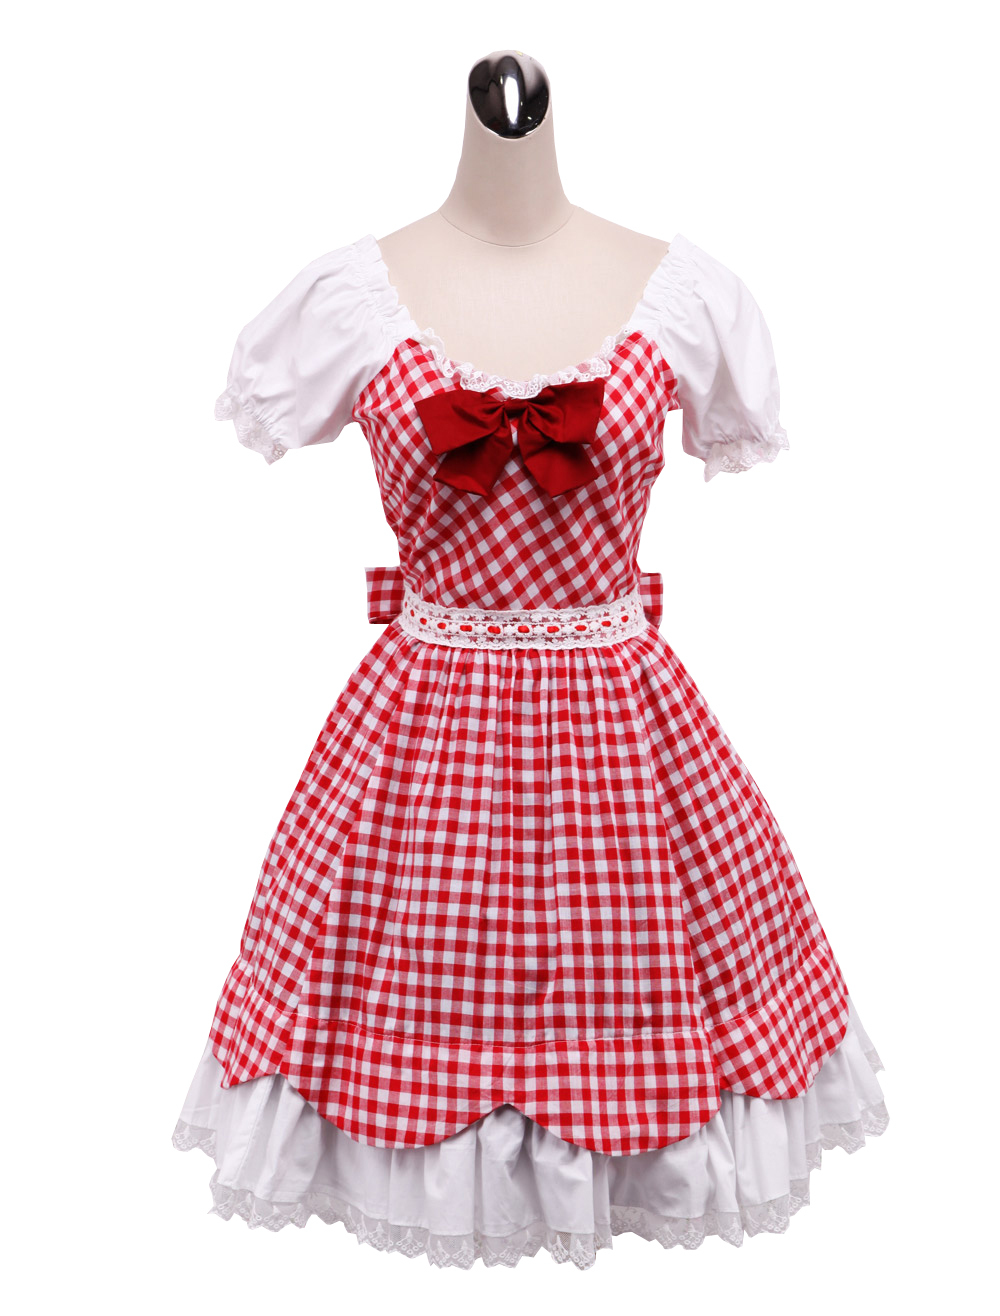 Primary image for ZeroMart Red Cotton Shepherd Check Bow Ruffle Retro Victorian Lolita Dress